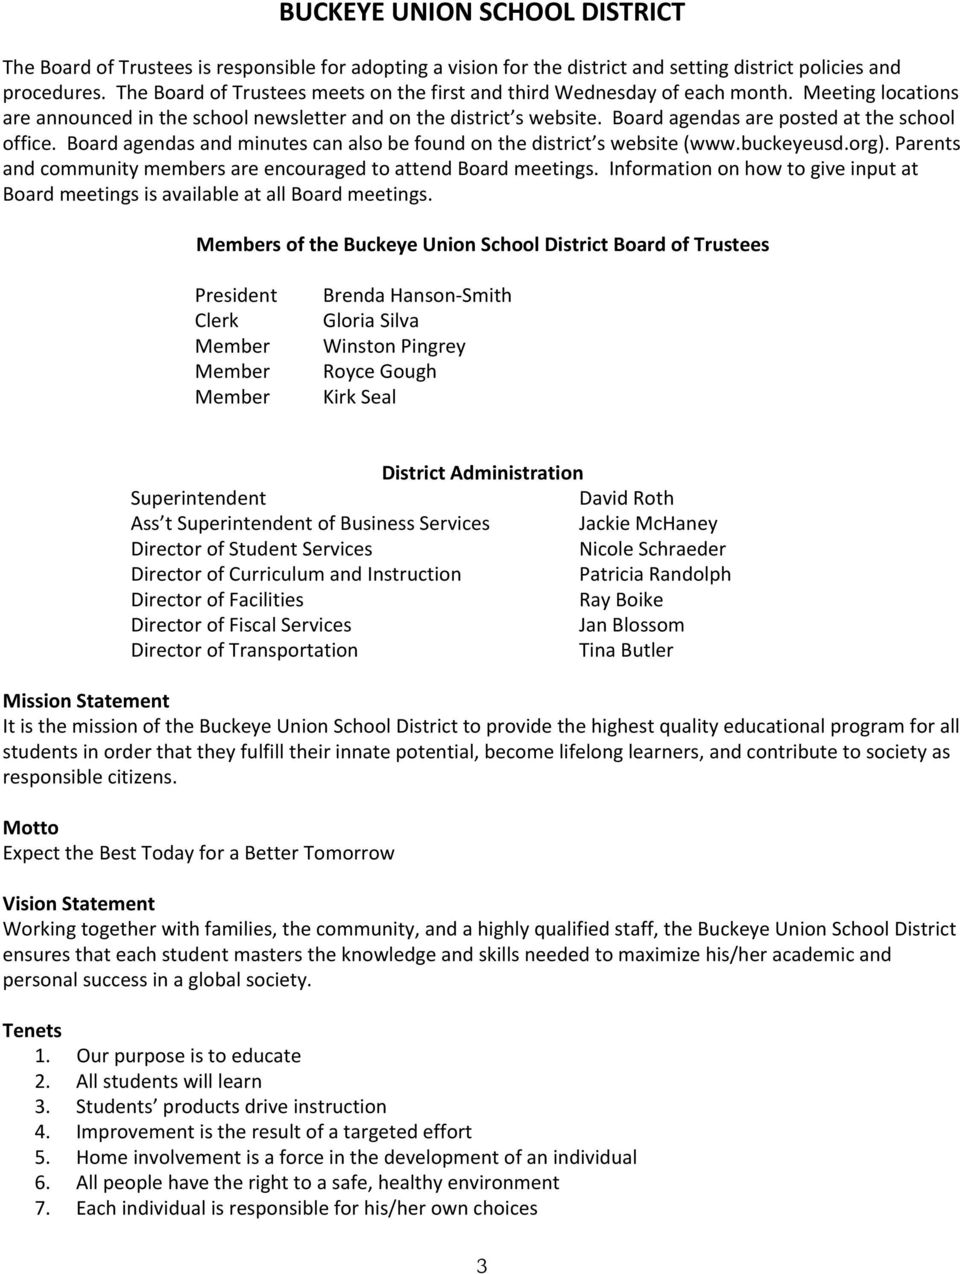 Board agendas are posted at the school office. Board agendas and minutes can also be found on the district s website (www.buckeyeusd.org).